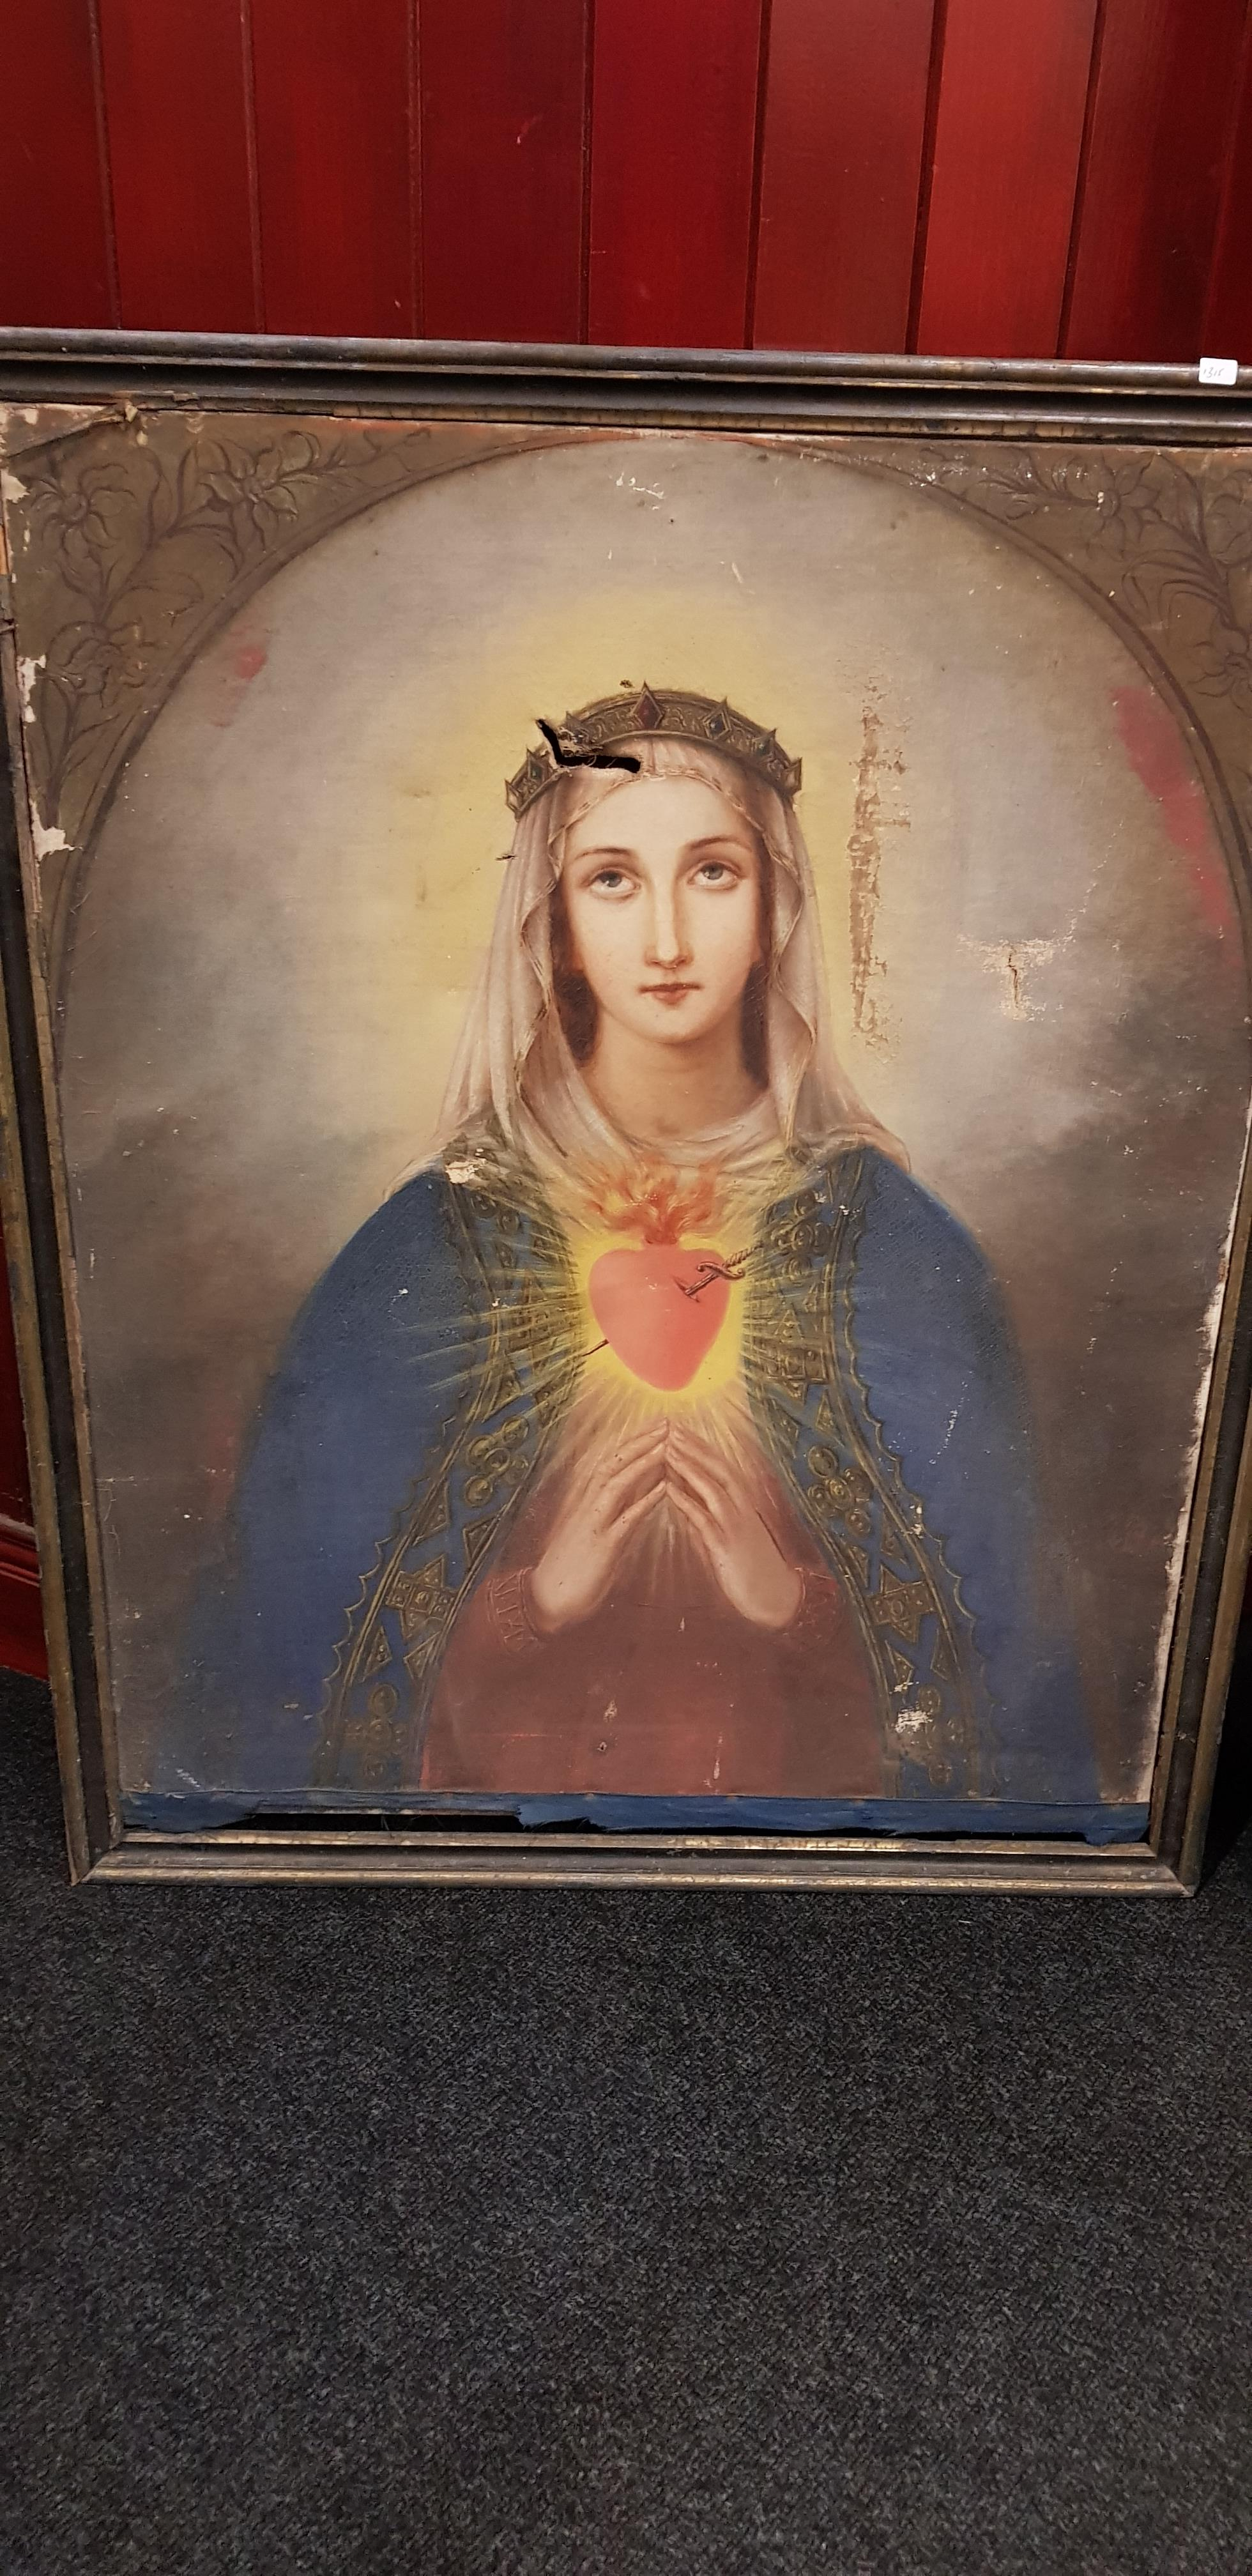 """PAIR OF VERY LARGE OLD MASTER STYLE PAINTINGS OF JESUS AND MARY 37"""" (H) x 29"""" (W) - Image 2 of 5"""